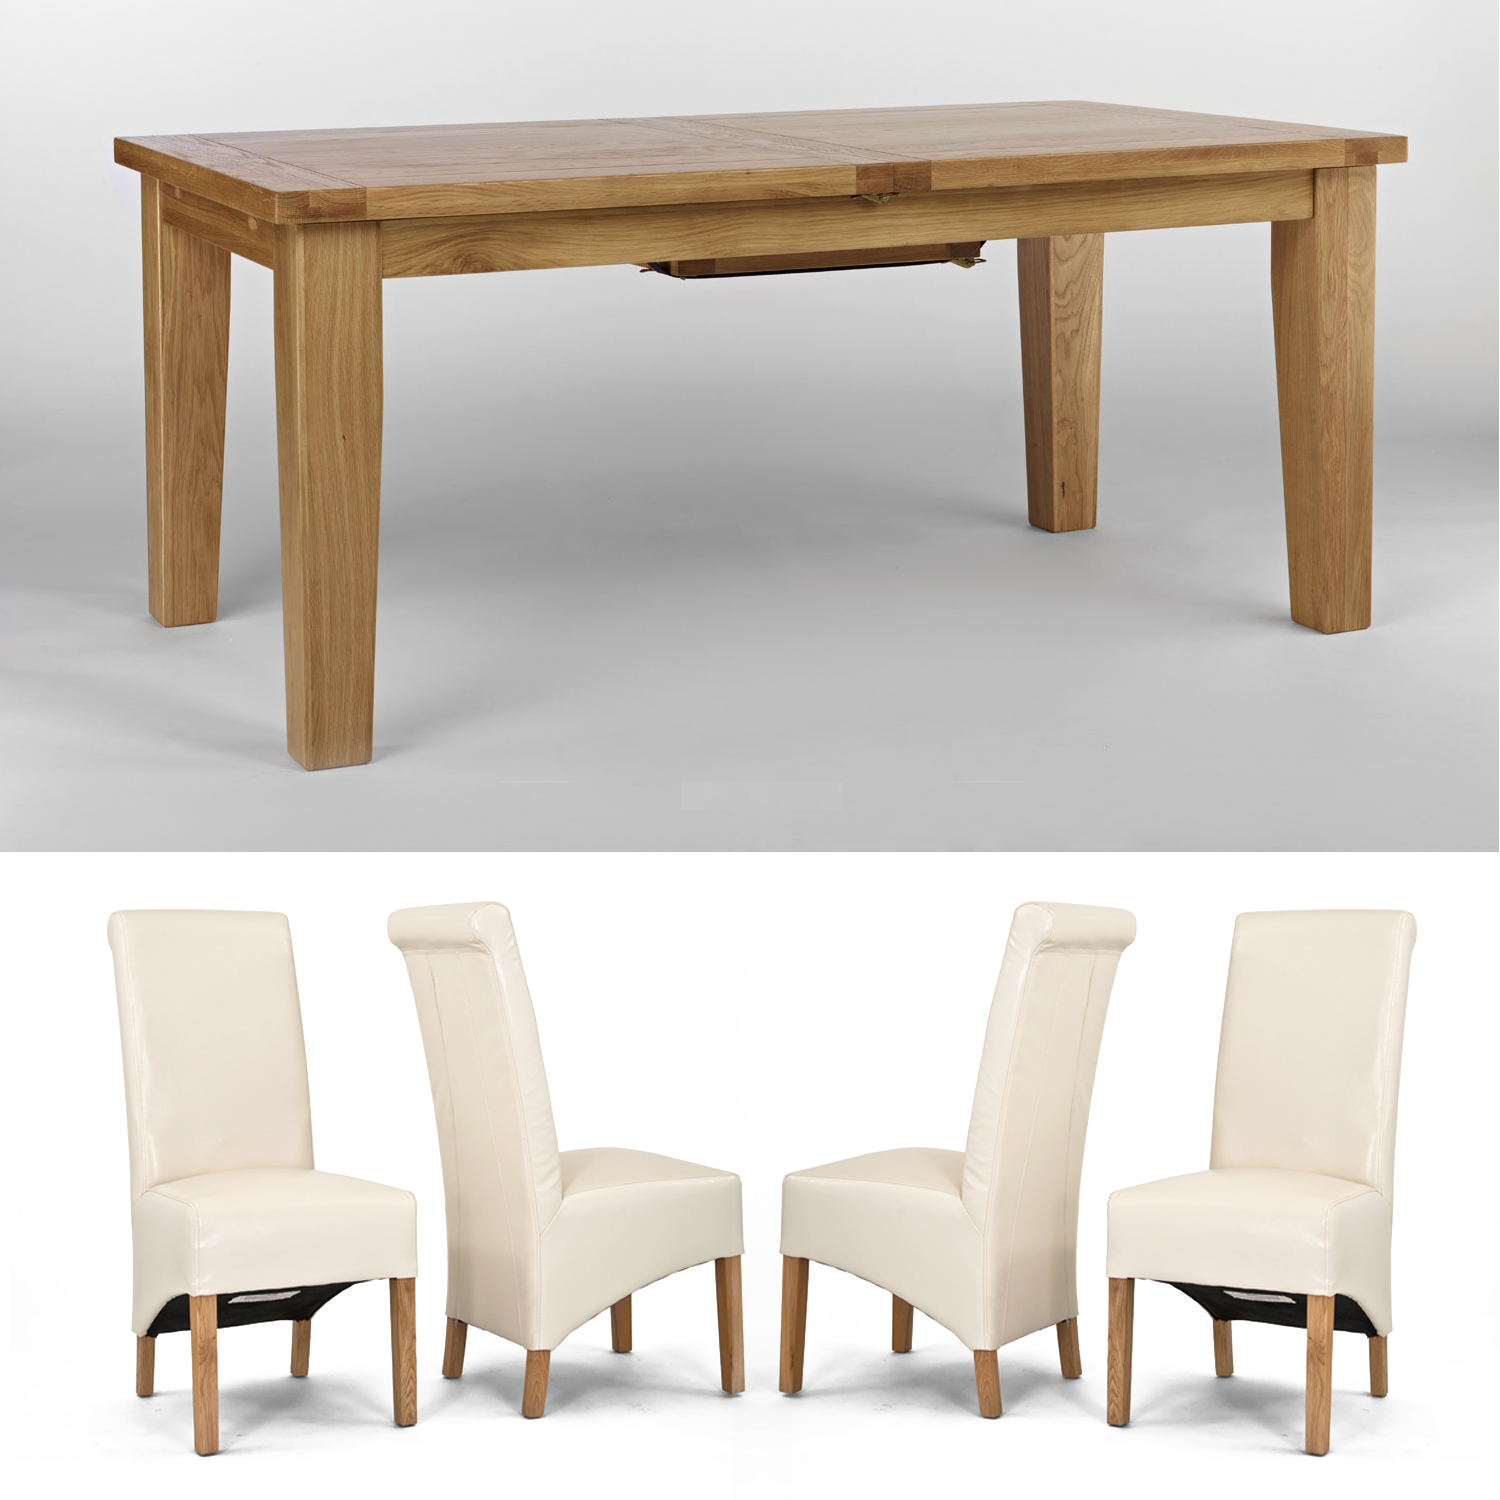 Chiltern Grand Oak Extending Dining Table - 1800-2300mm + 6 or 8 Sherwood Oak Cream Roll Back Dining Chairs (Table + 8 chairs)